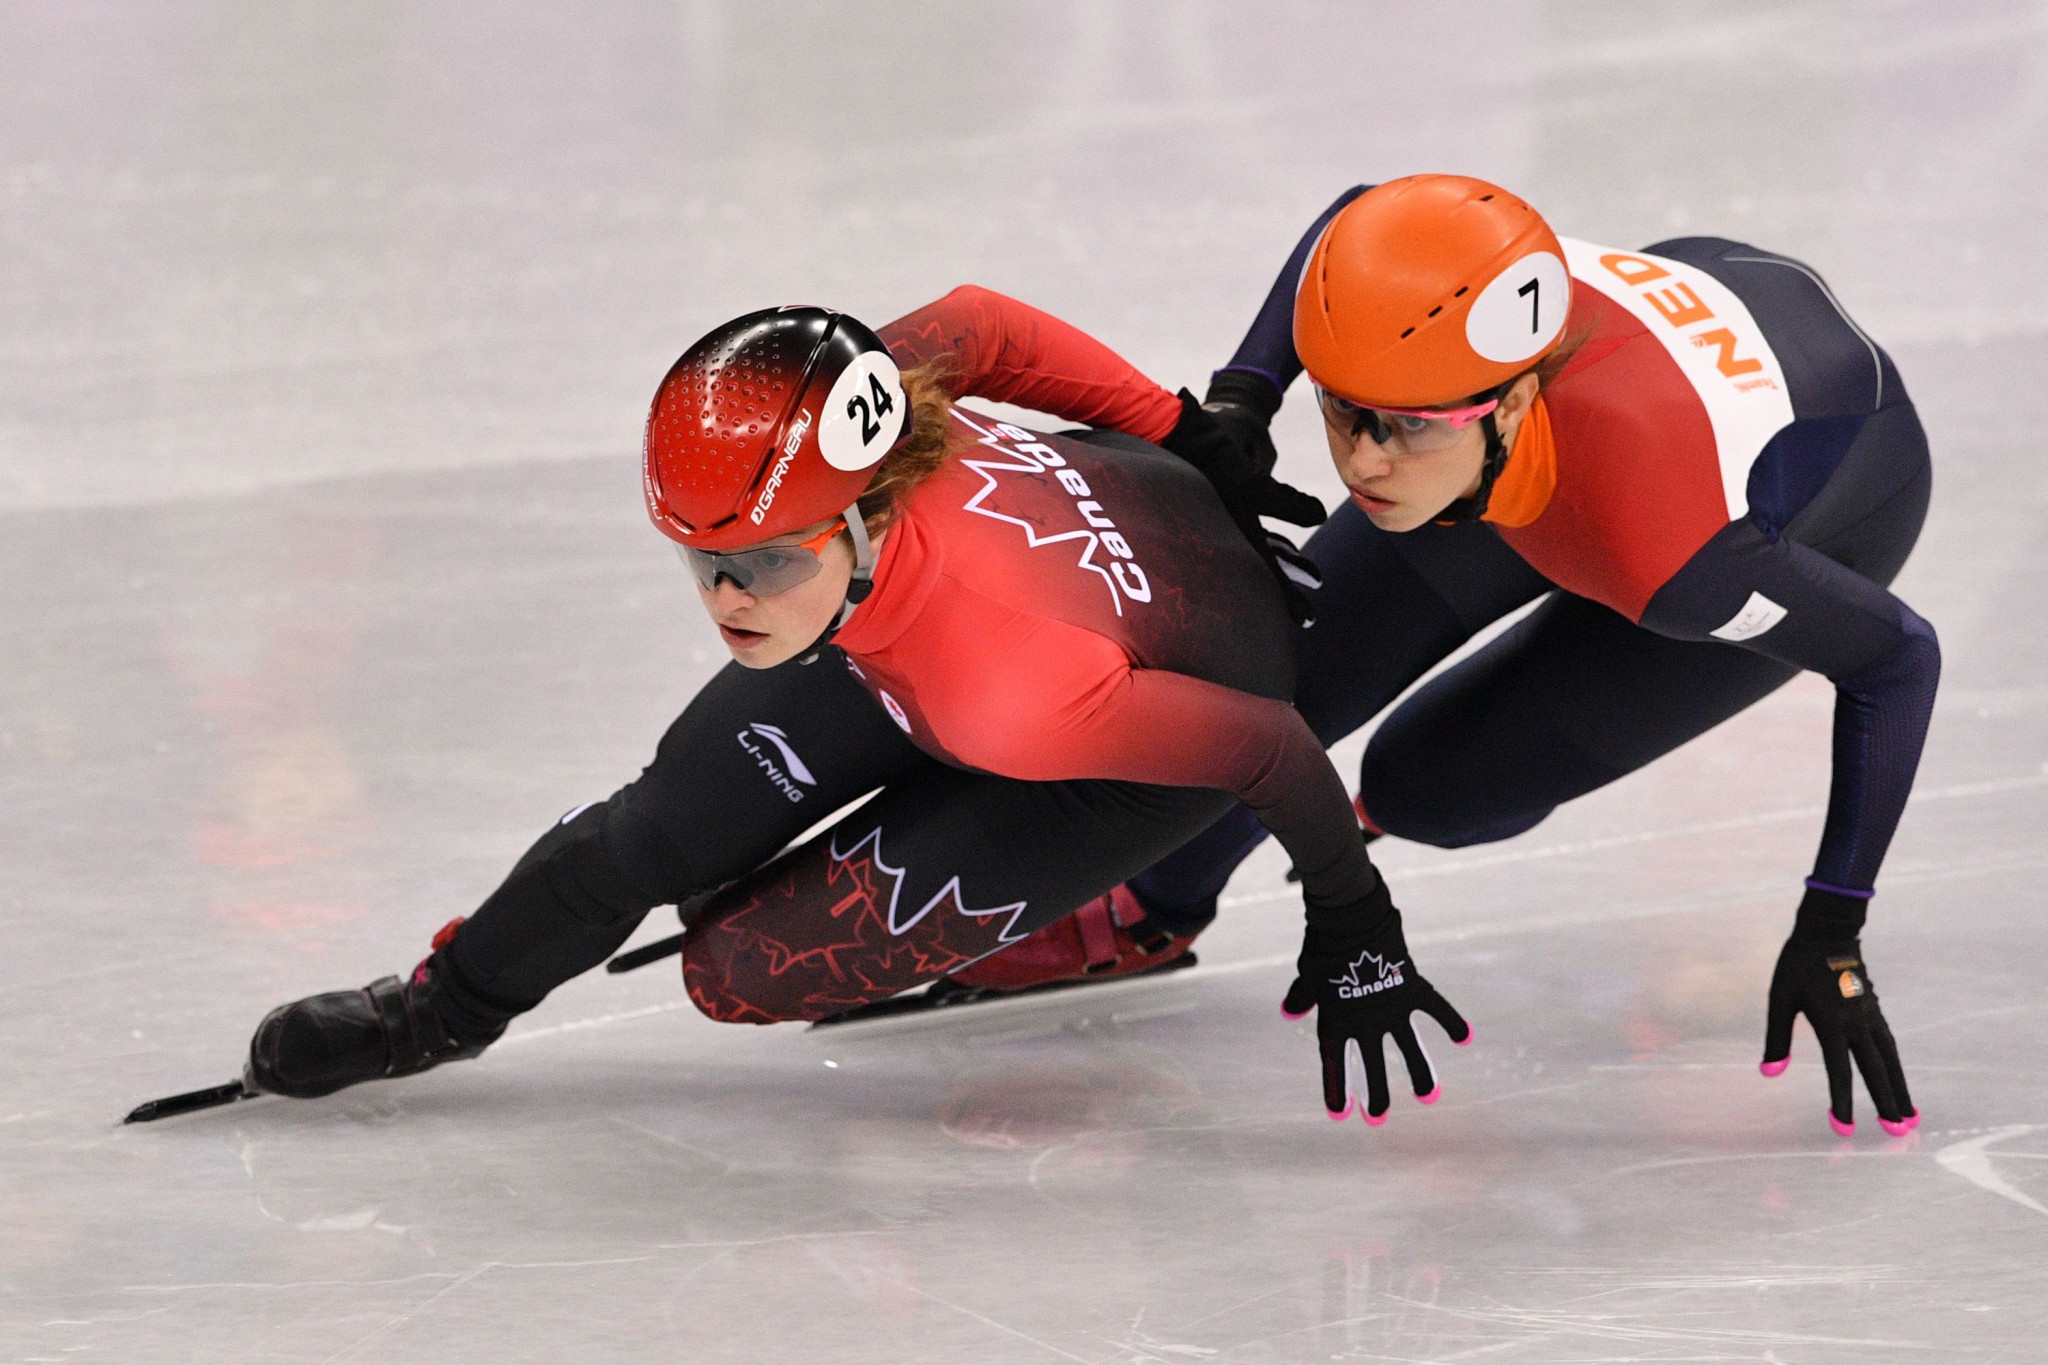 Canada's Kim Boutin, left, and Suzanne Schulting of The Netherlands are both closing on overall ISU Short Track World Cup titles at the fifth in the series in Dresden ©Getty Images